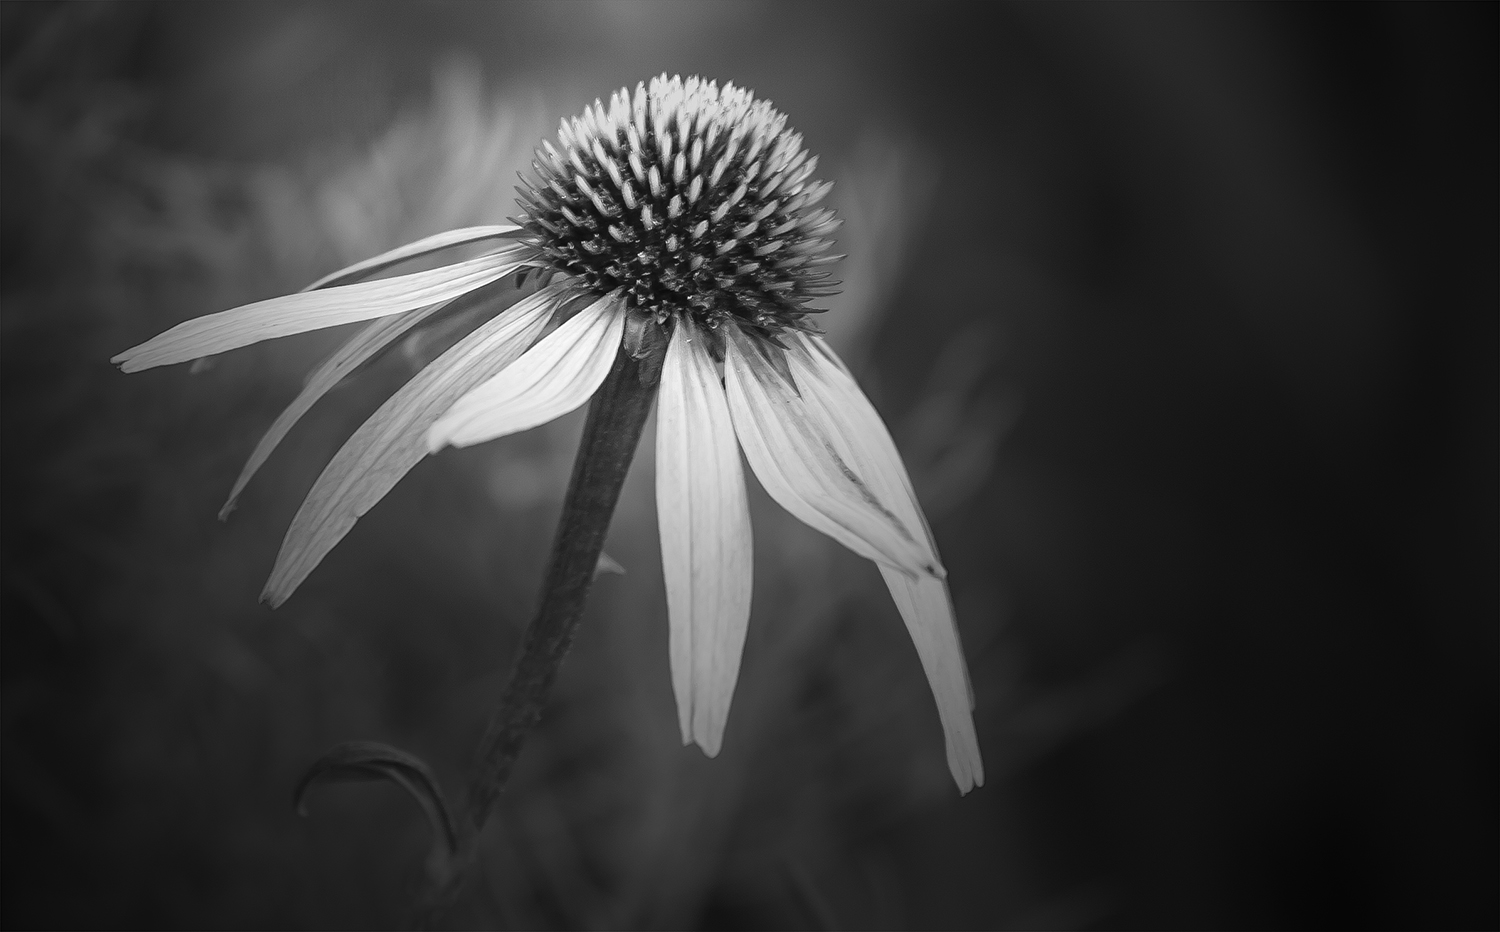 Flowers in Black and White - Annette Schreiber - Fine Art Photography